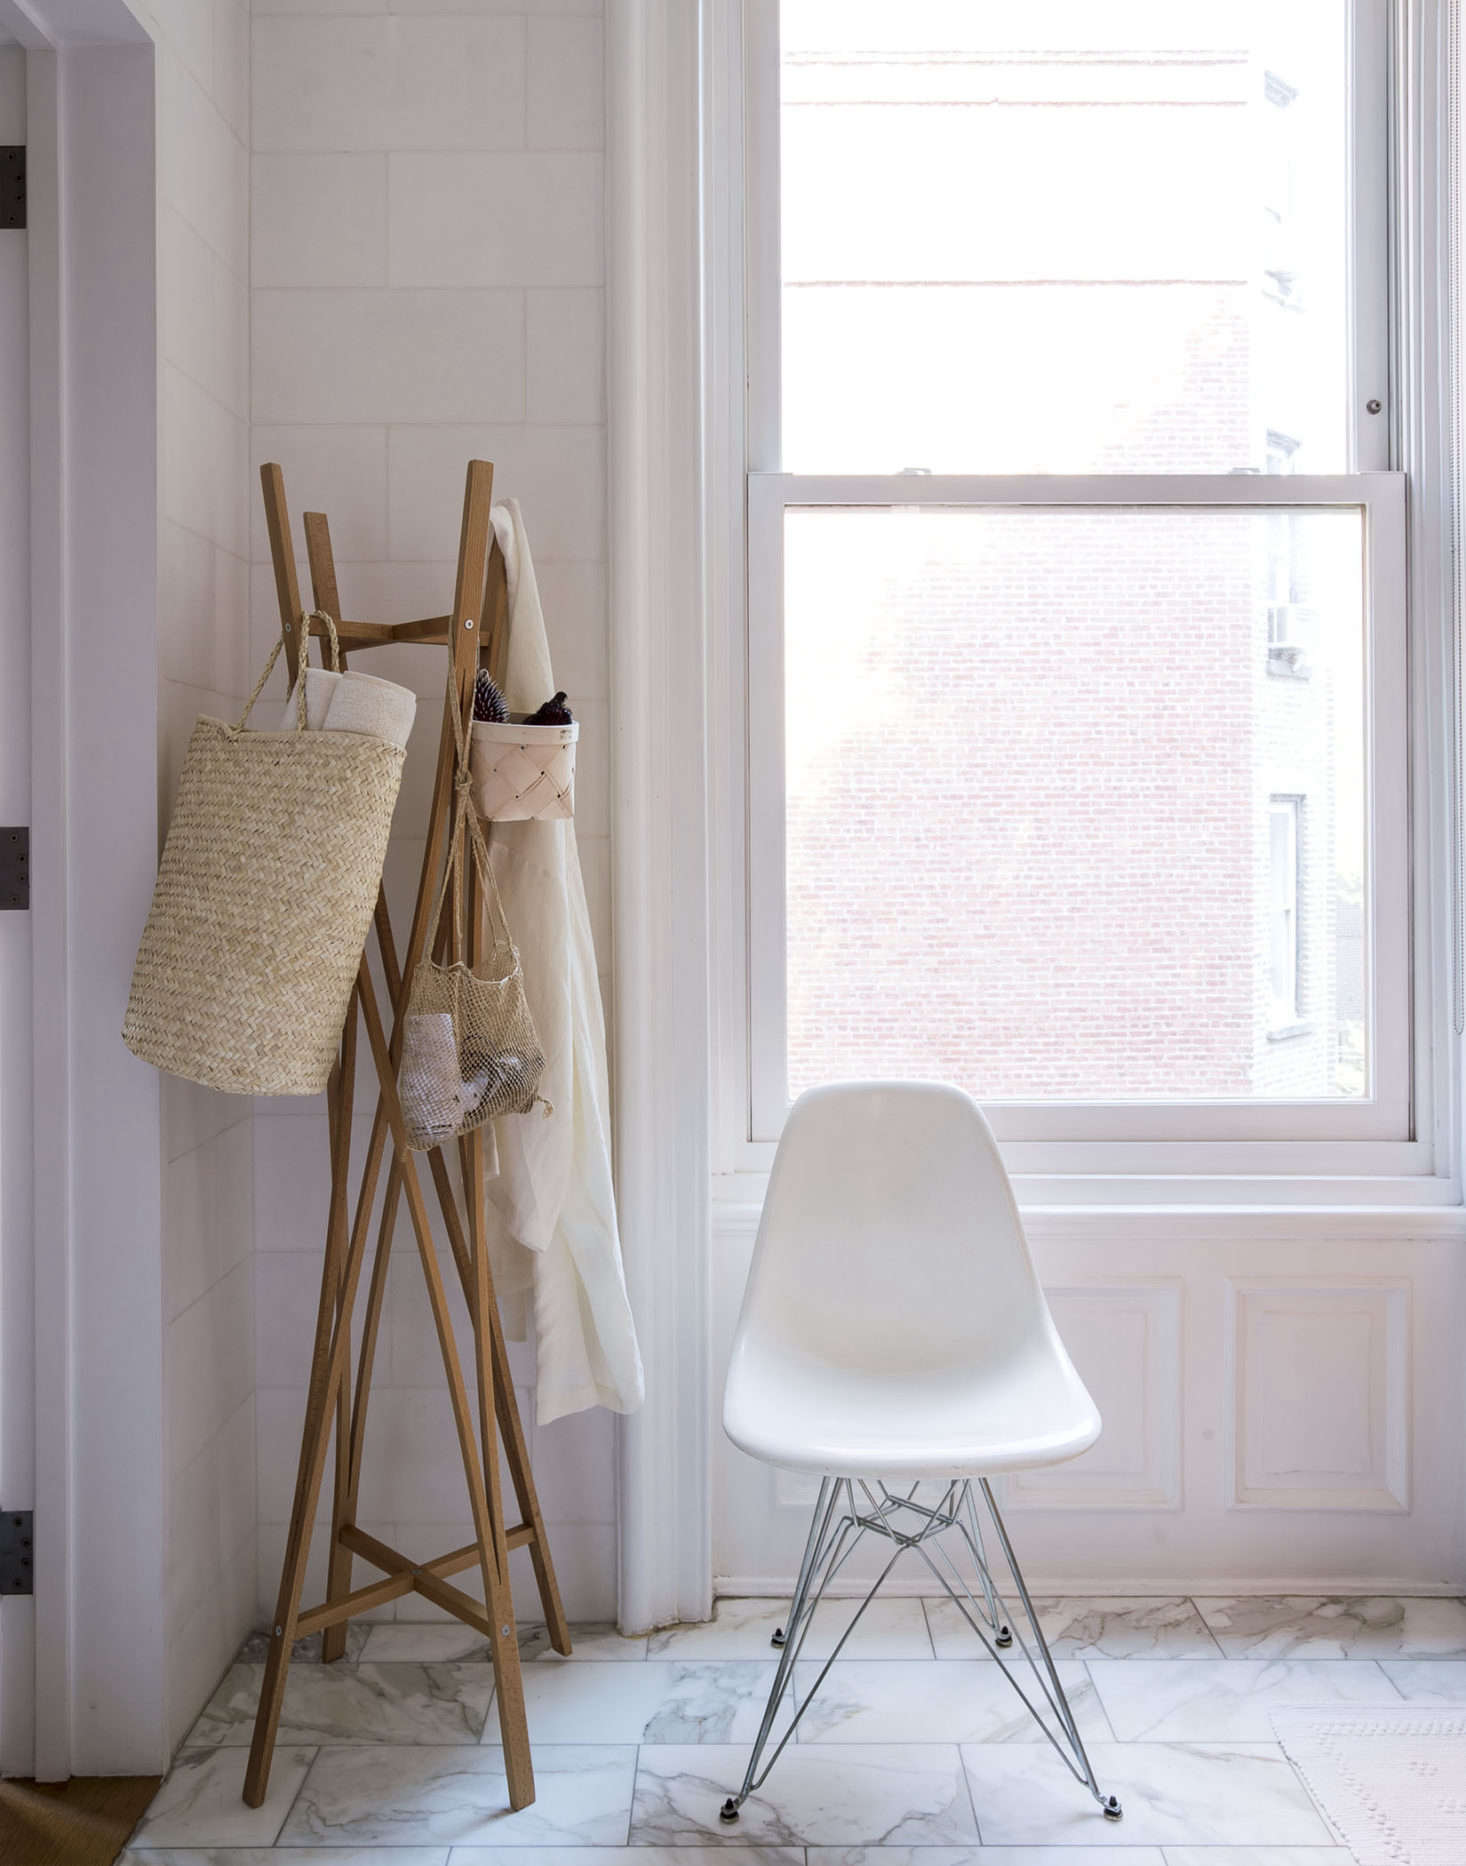 Coat Rack In Bathroom By Matthew Williams For Organized Home Book